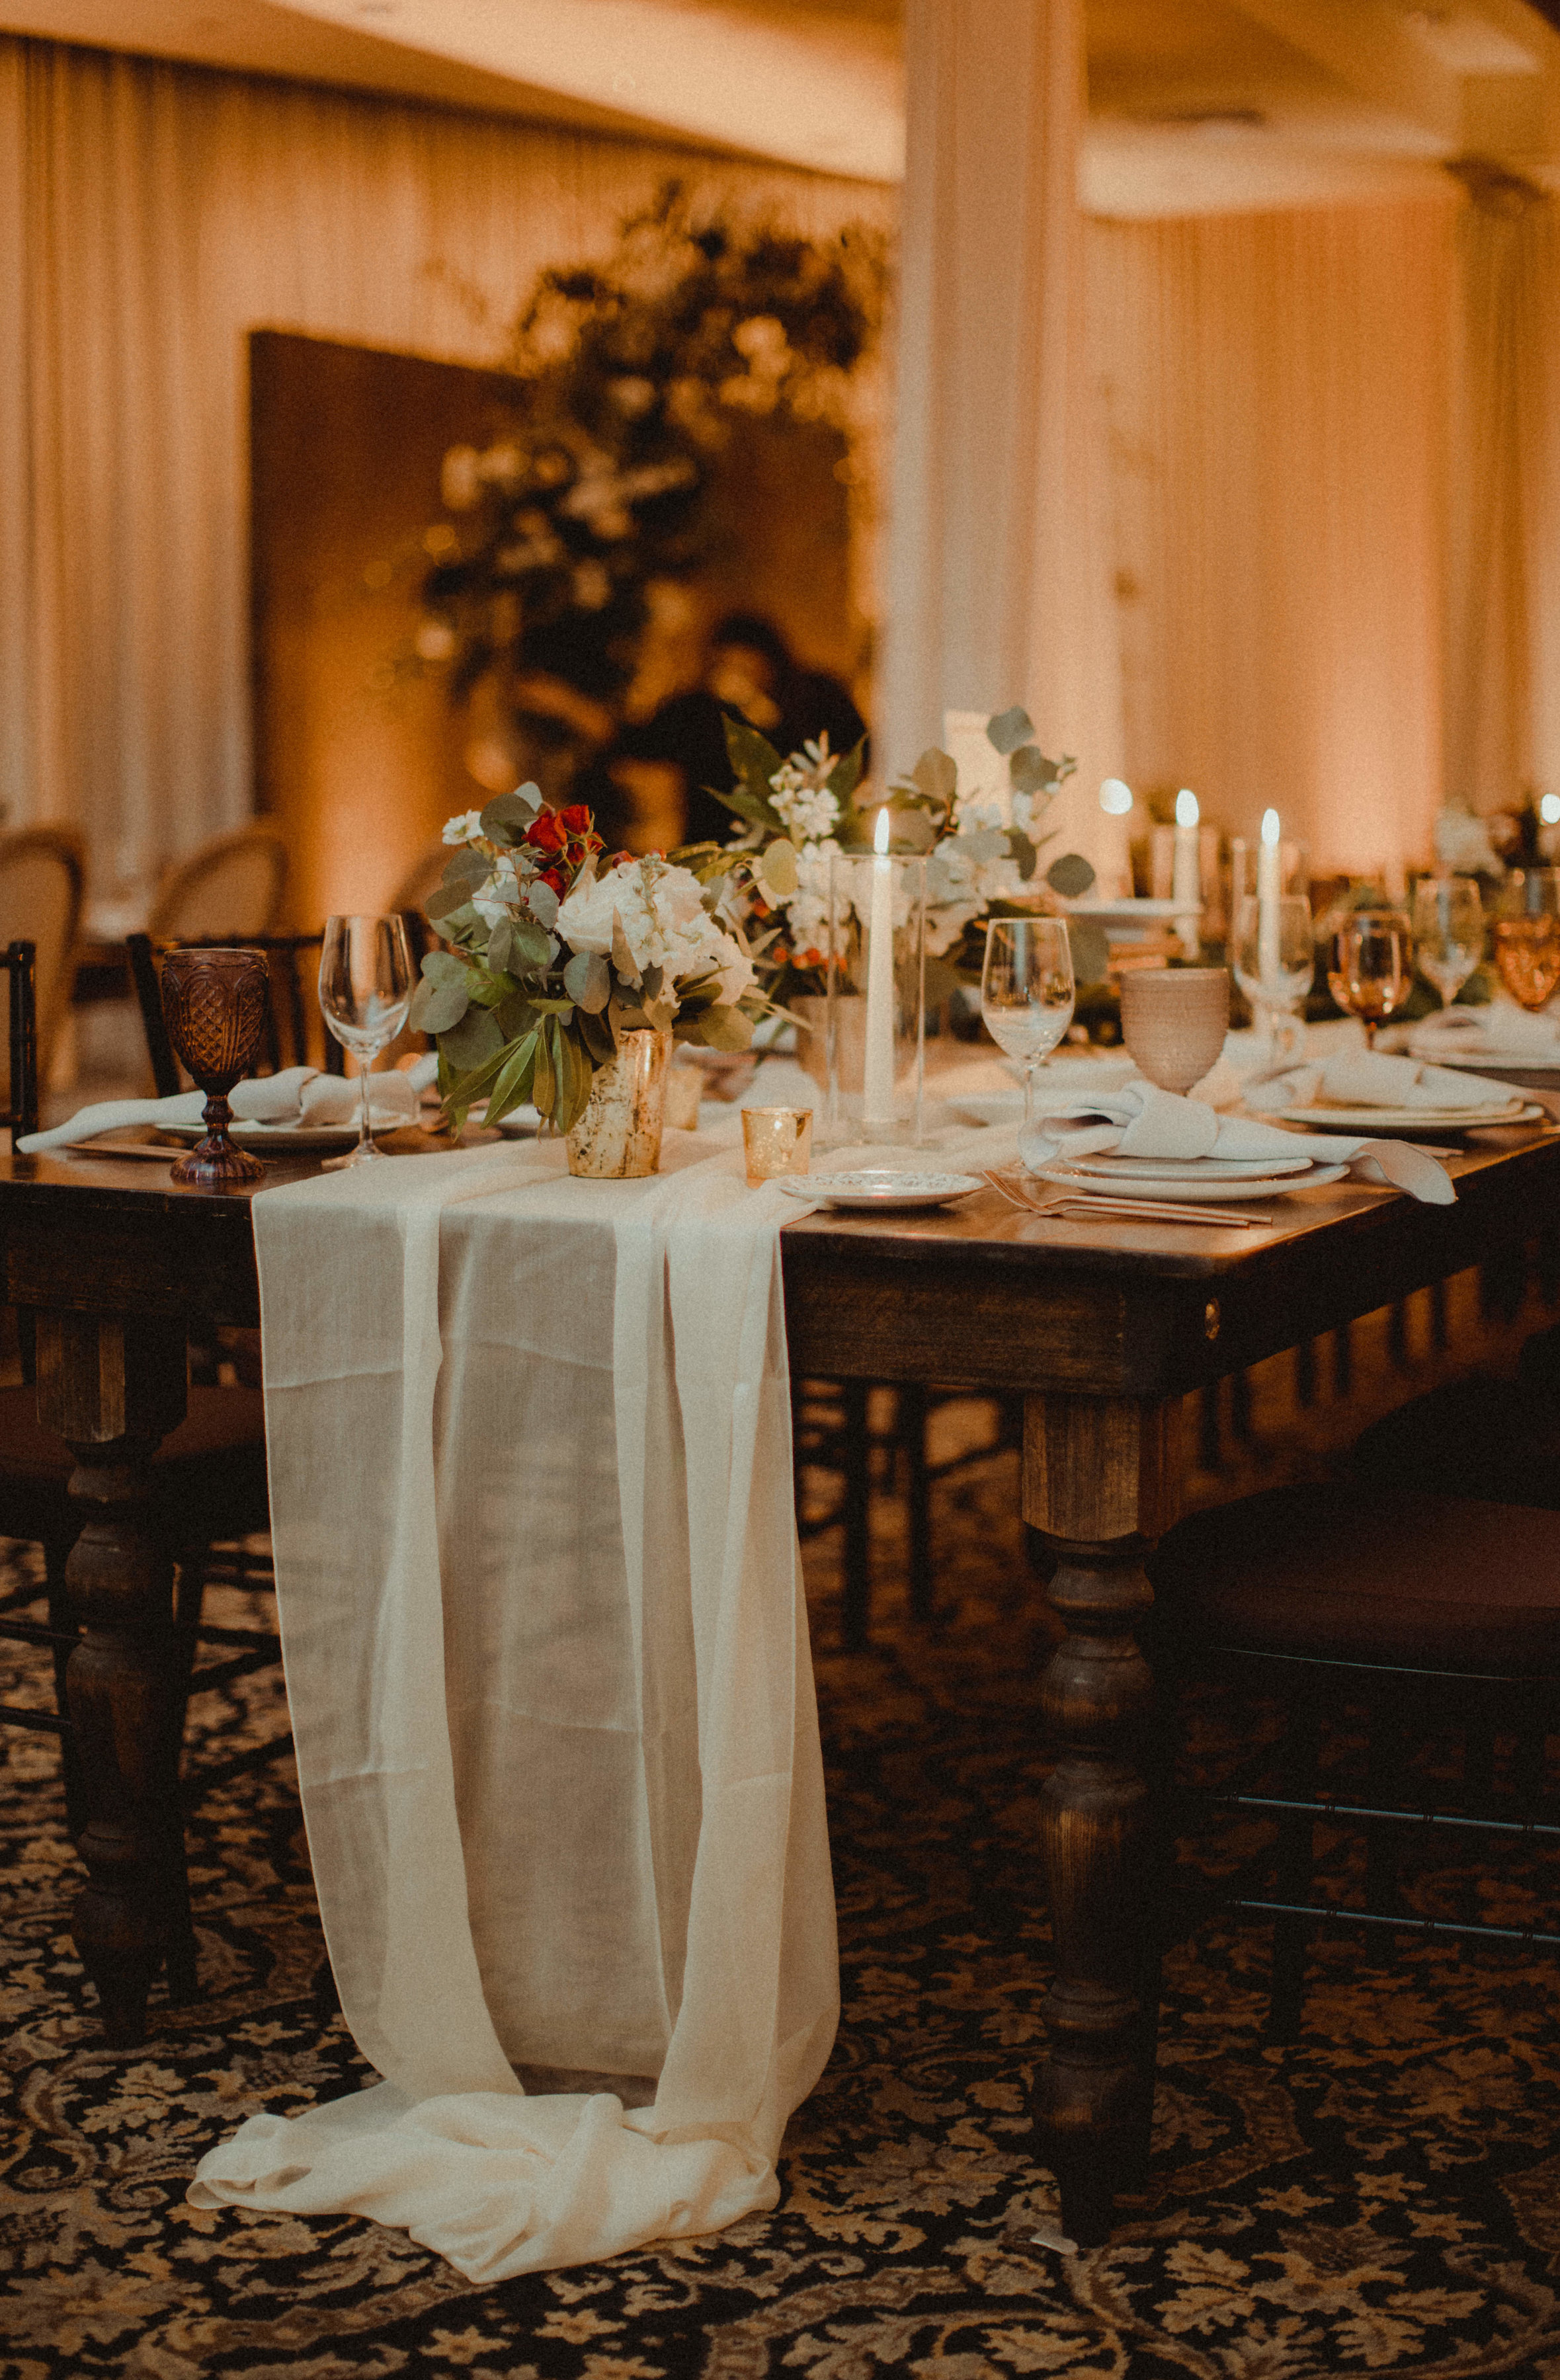 Bridal Party Kings Table with Linen Table Runners